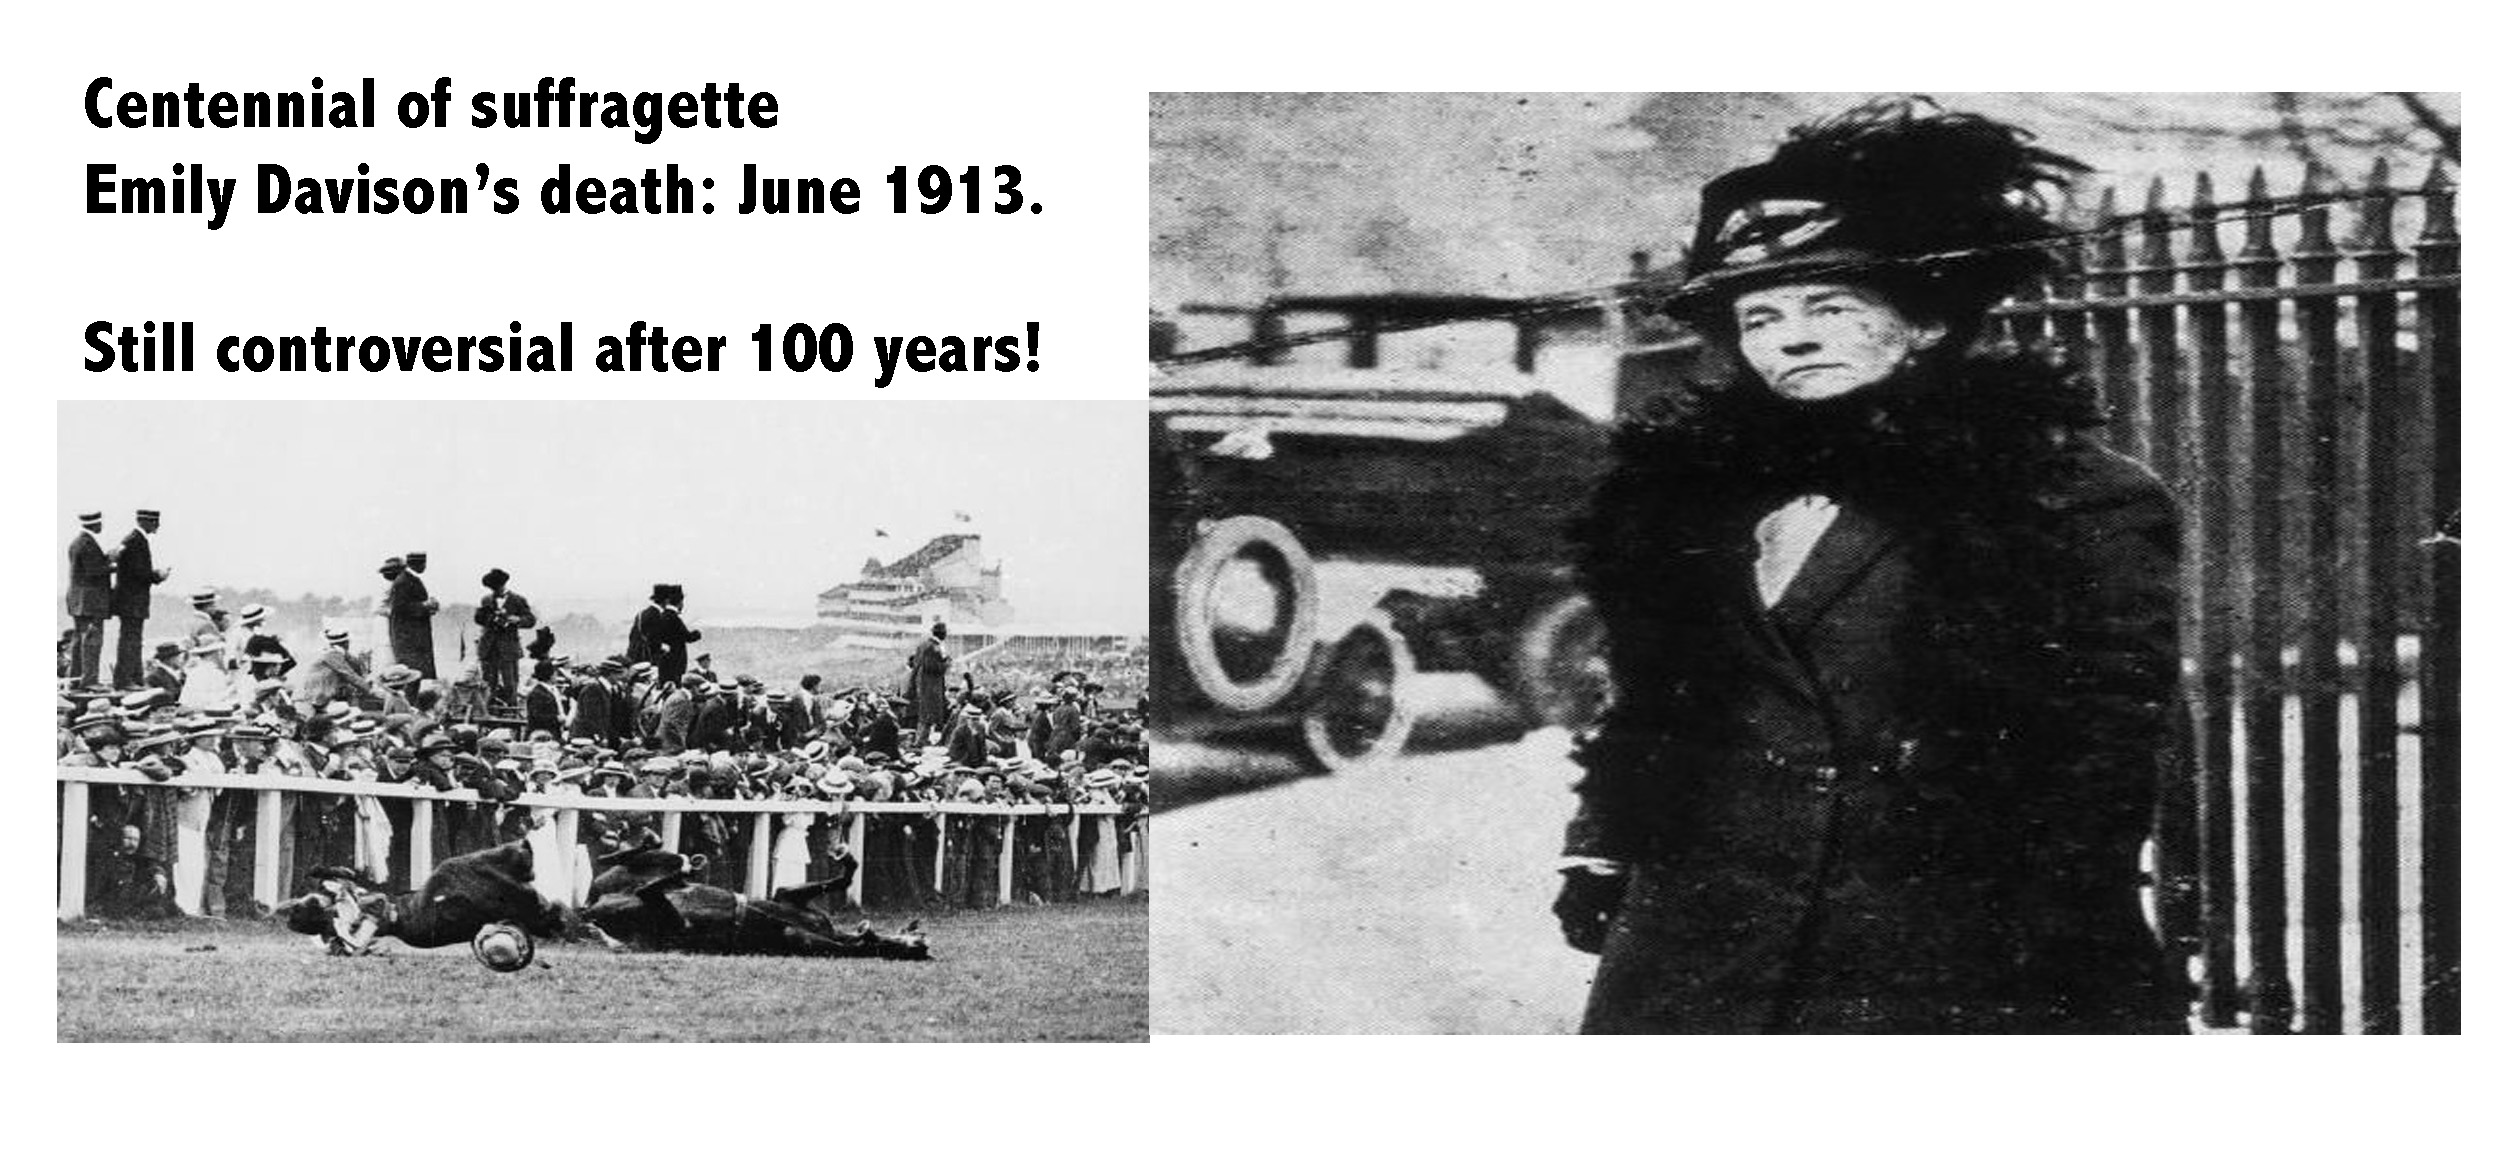 emily davison suicide or accident essay 2013-5-25  the suffragette mown down by the king's horse at the 1913 epsom derby is an iconic image of the women's movement but it has been claimed emily davison.